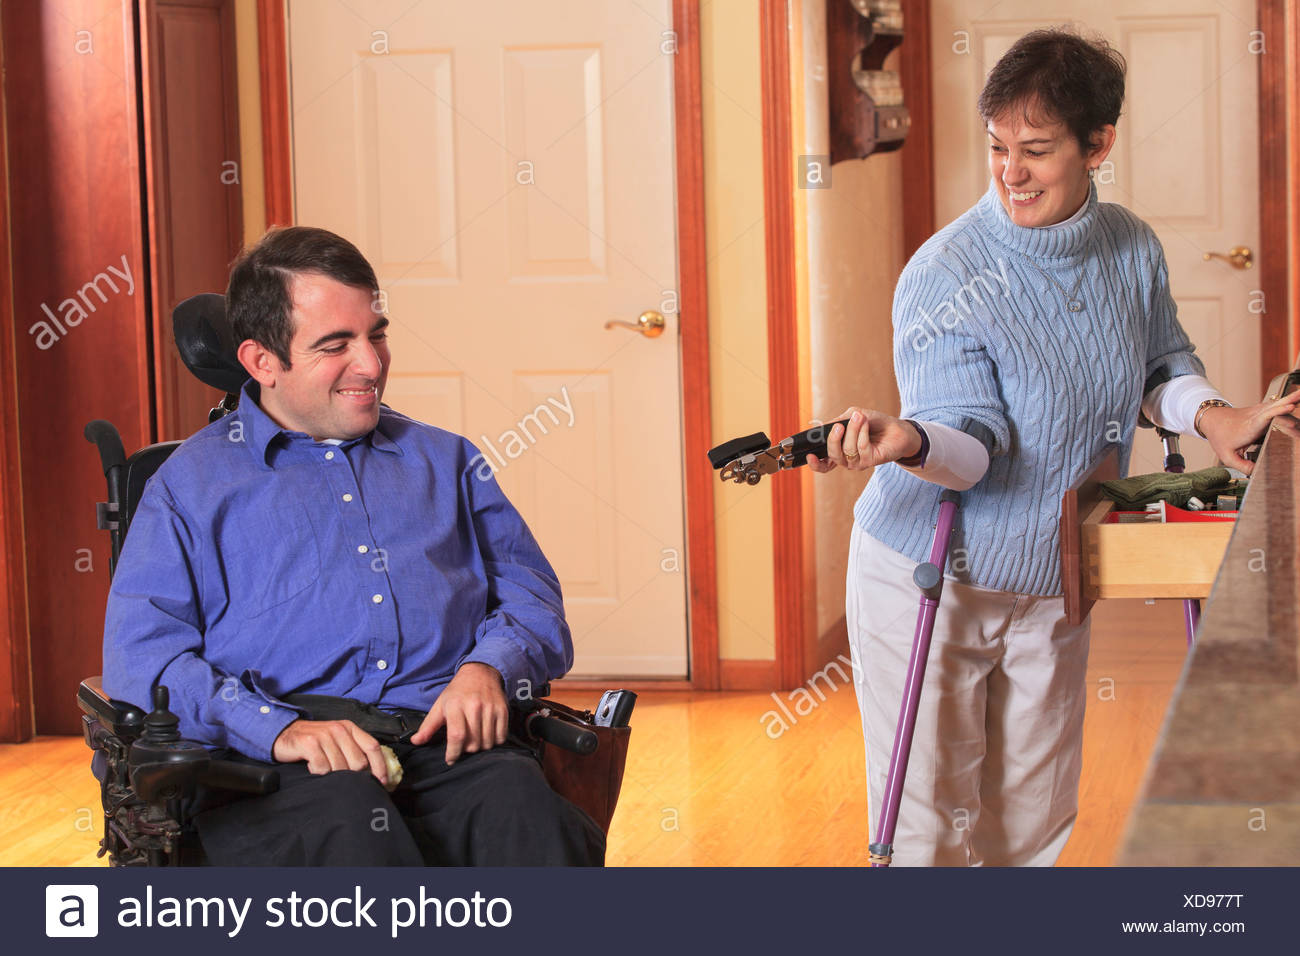 Woman with Cerebral Palsy using crutches and giving a can opener to her husband in a wheelchair with Cerebral Palsy - Stock Image